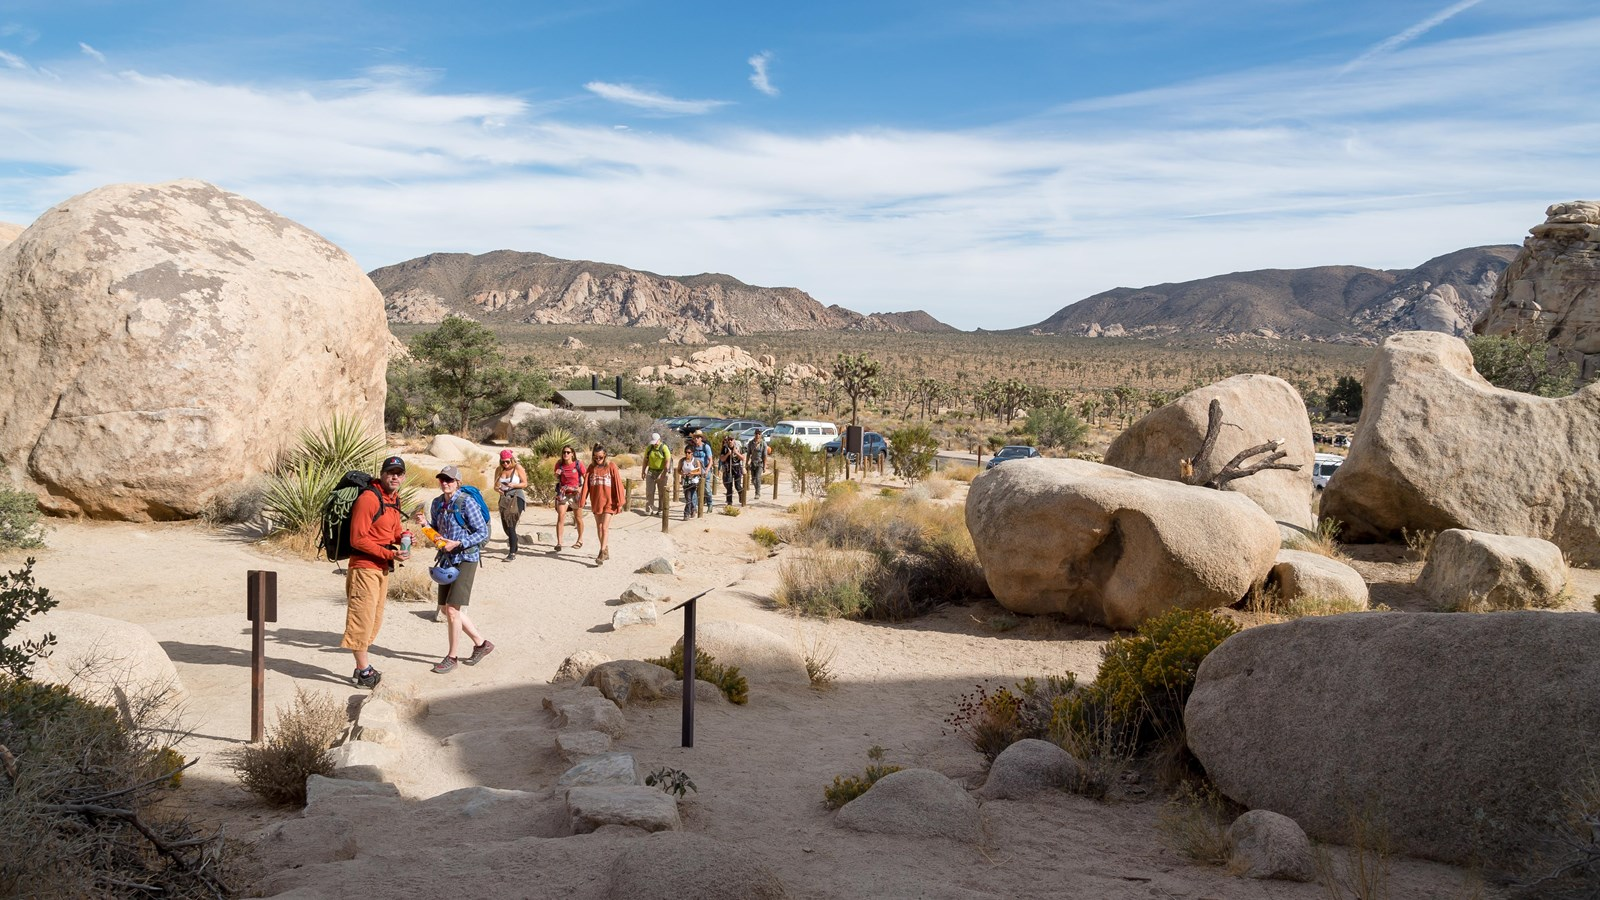 A group of hikers heading up a dirt trail between large rocks with mountains in the background.